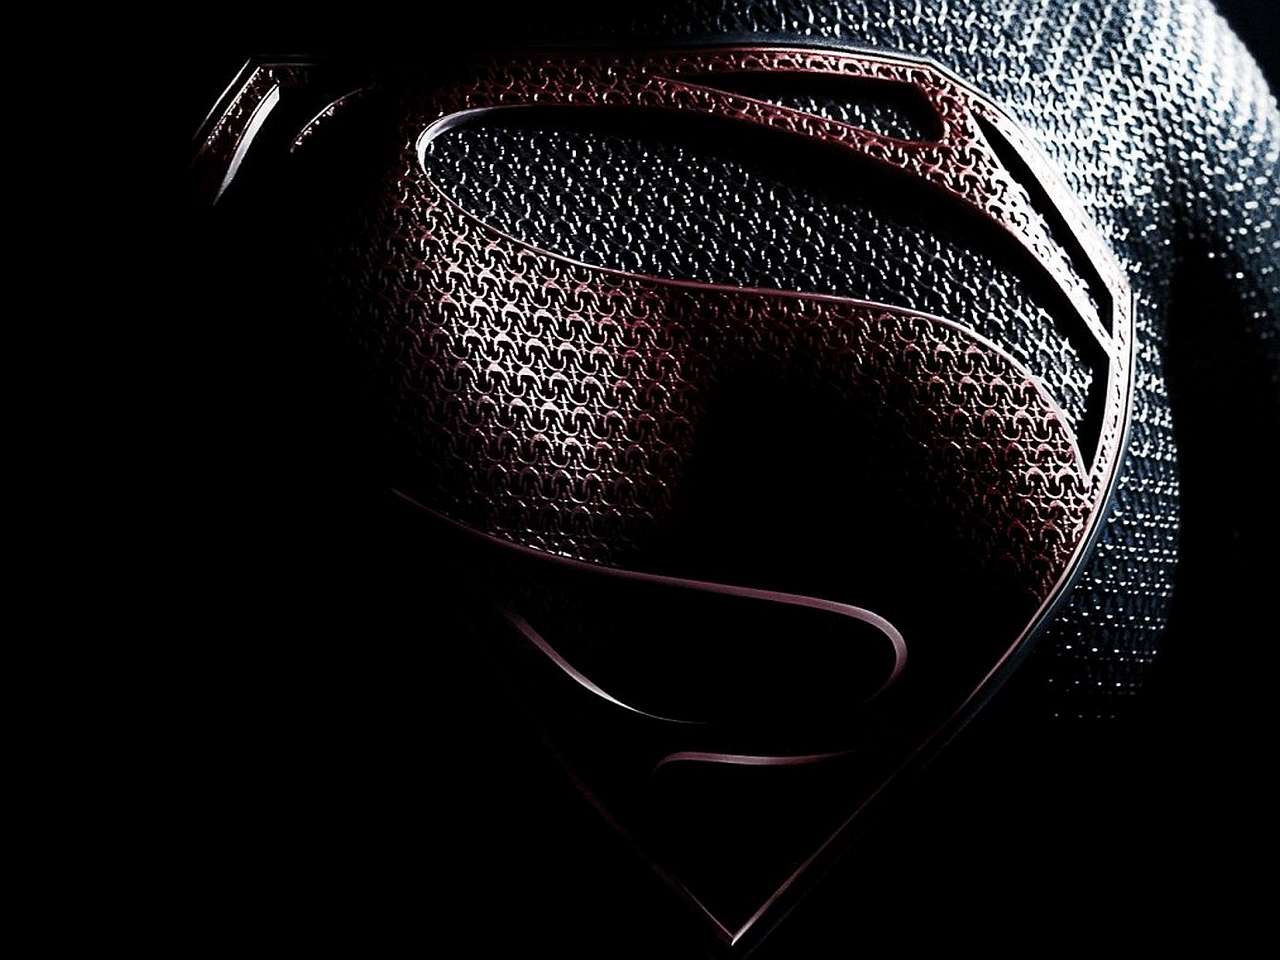 Man Of Steel Dark HD Wallpaper   HD Wallpaper HD Wallpaper 1280x960